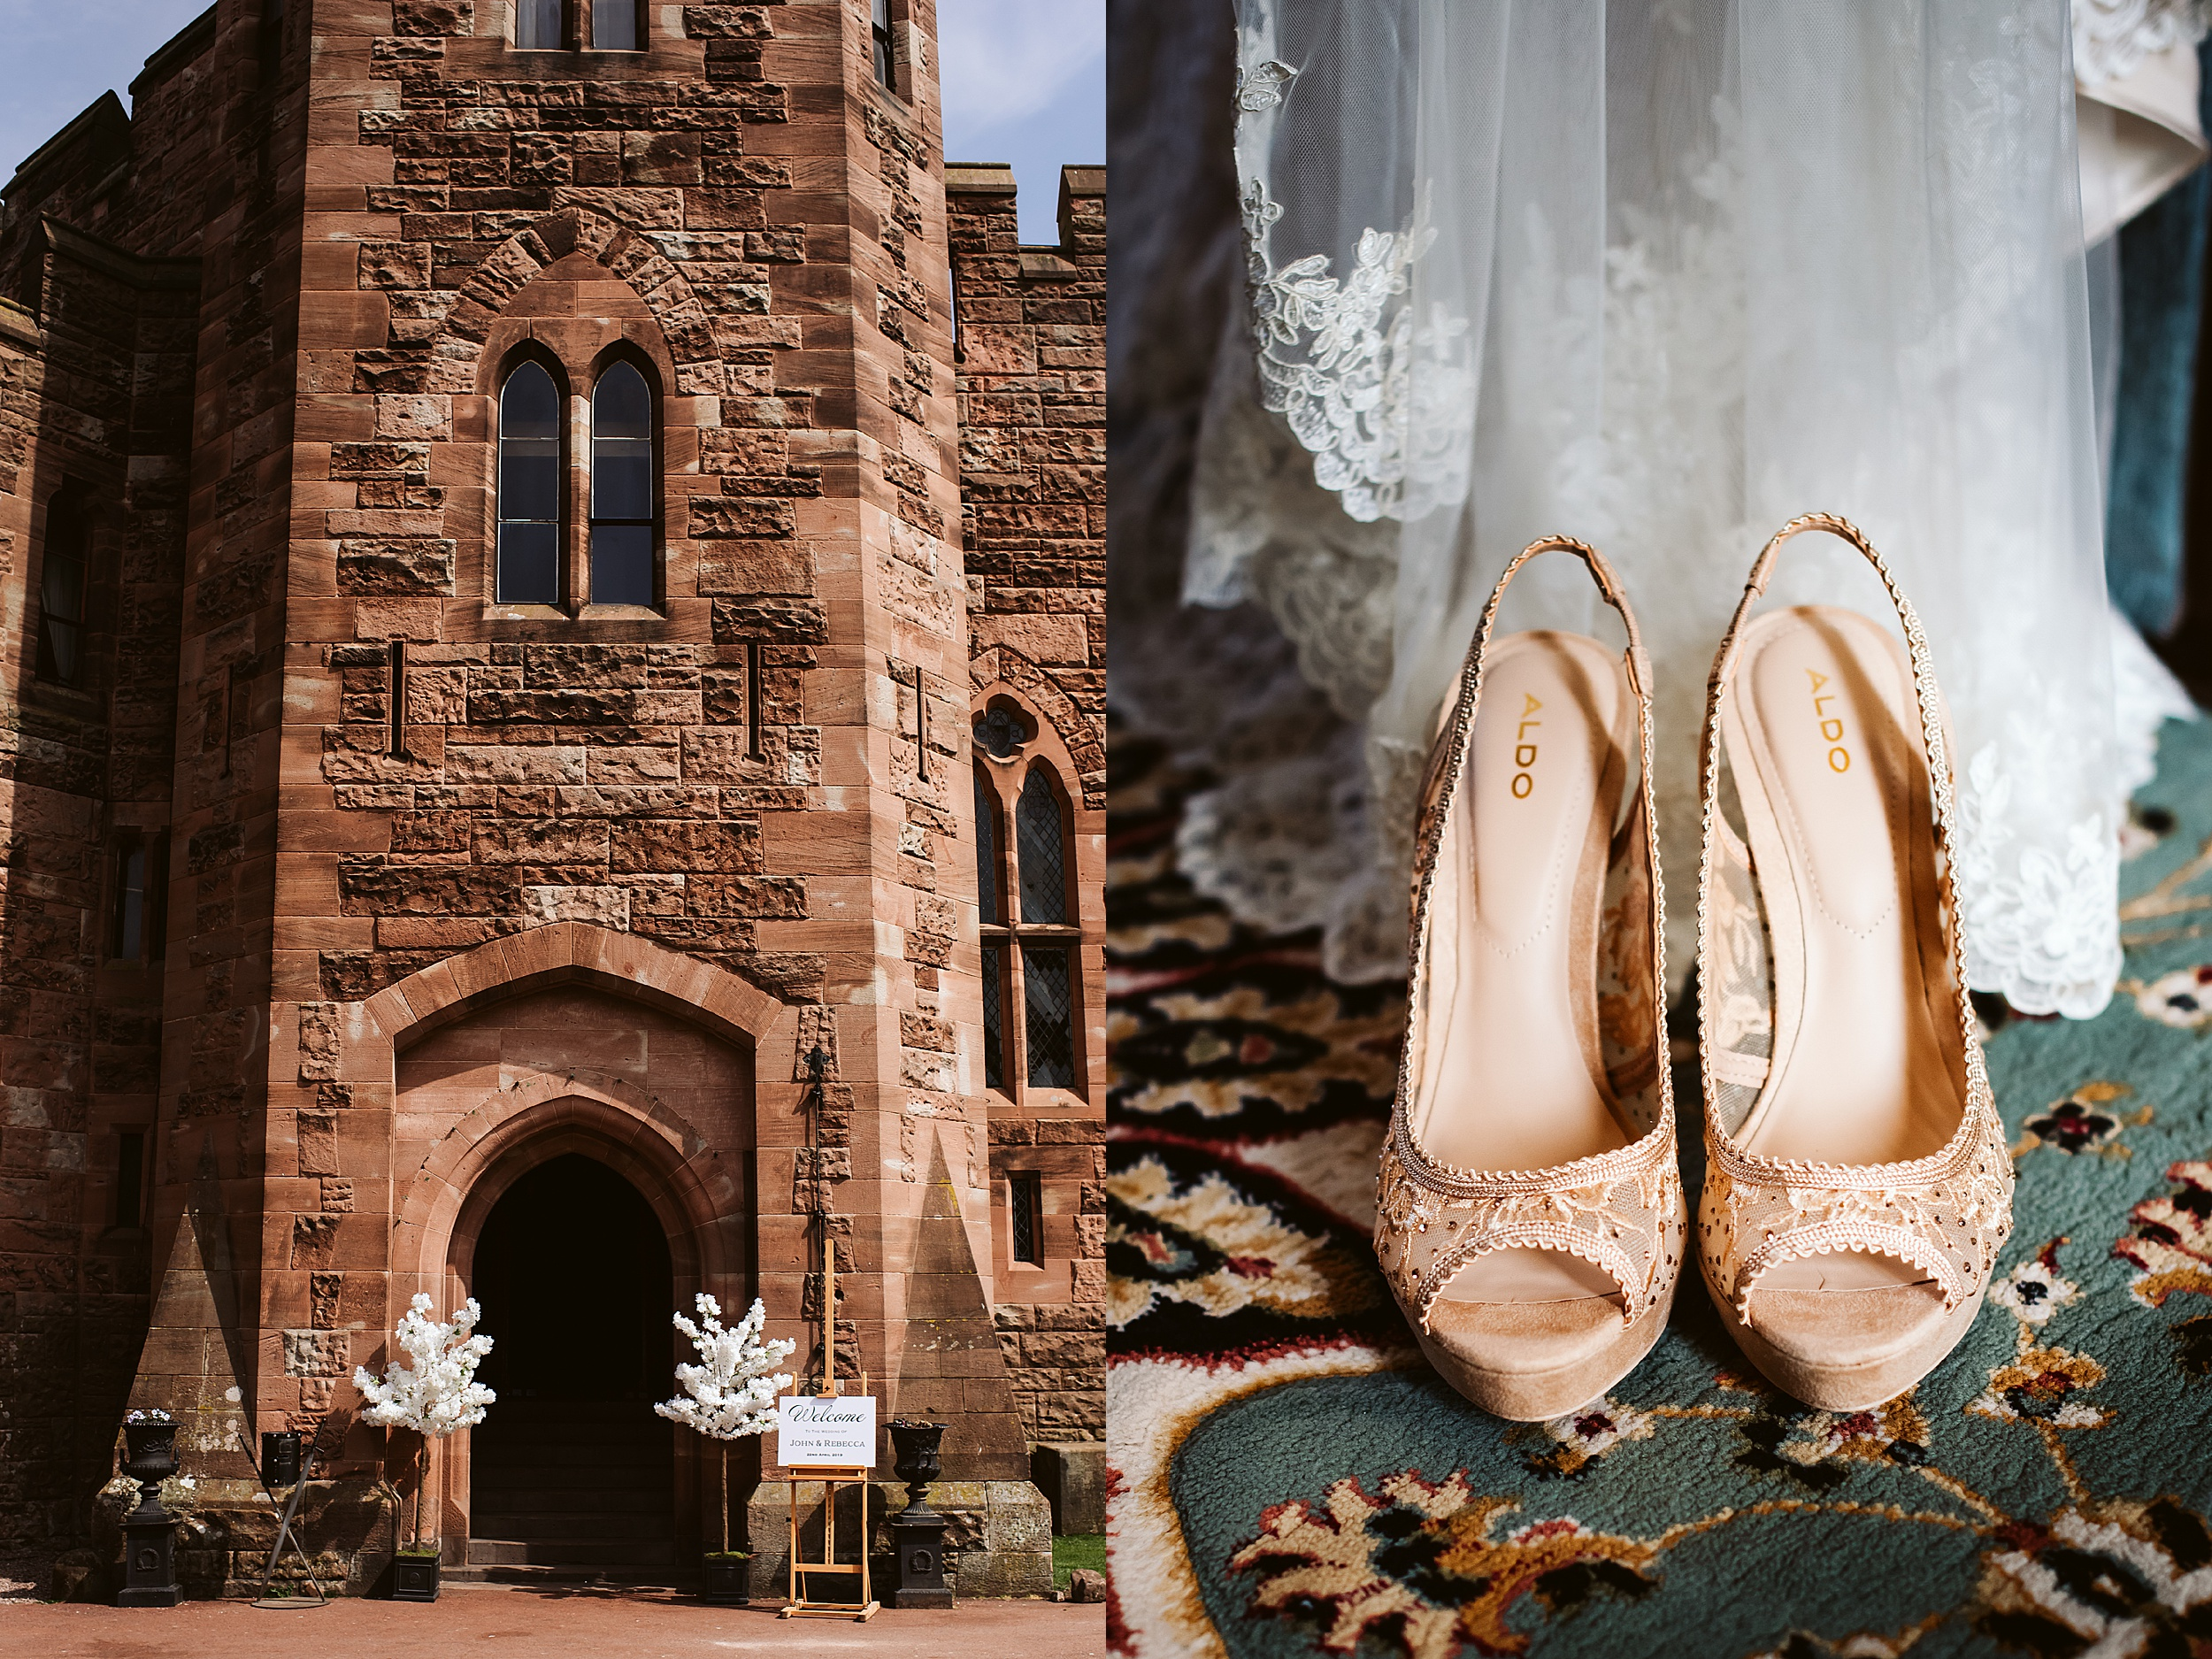 Peckforton_Castle_Cheshire_Toronto_Wedding_Photographer_UK_Destination_Wedding_0003.jpg